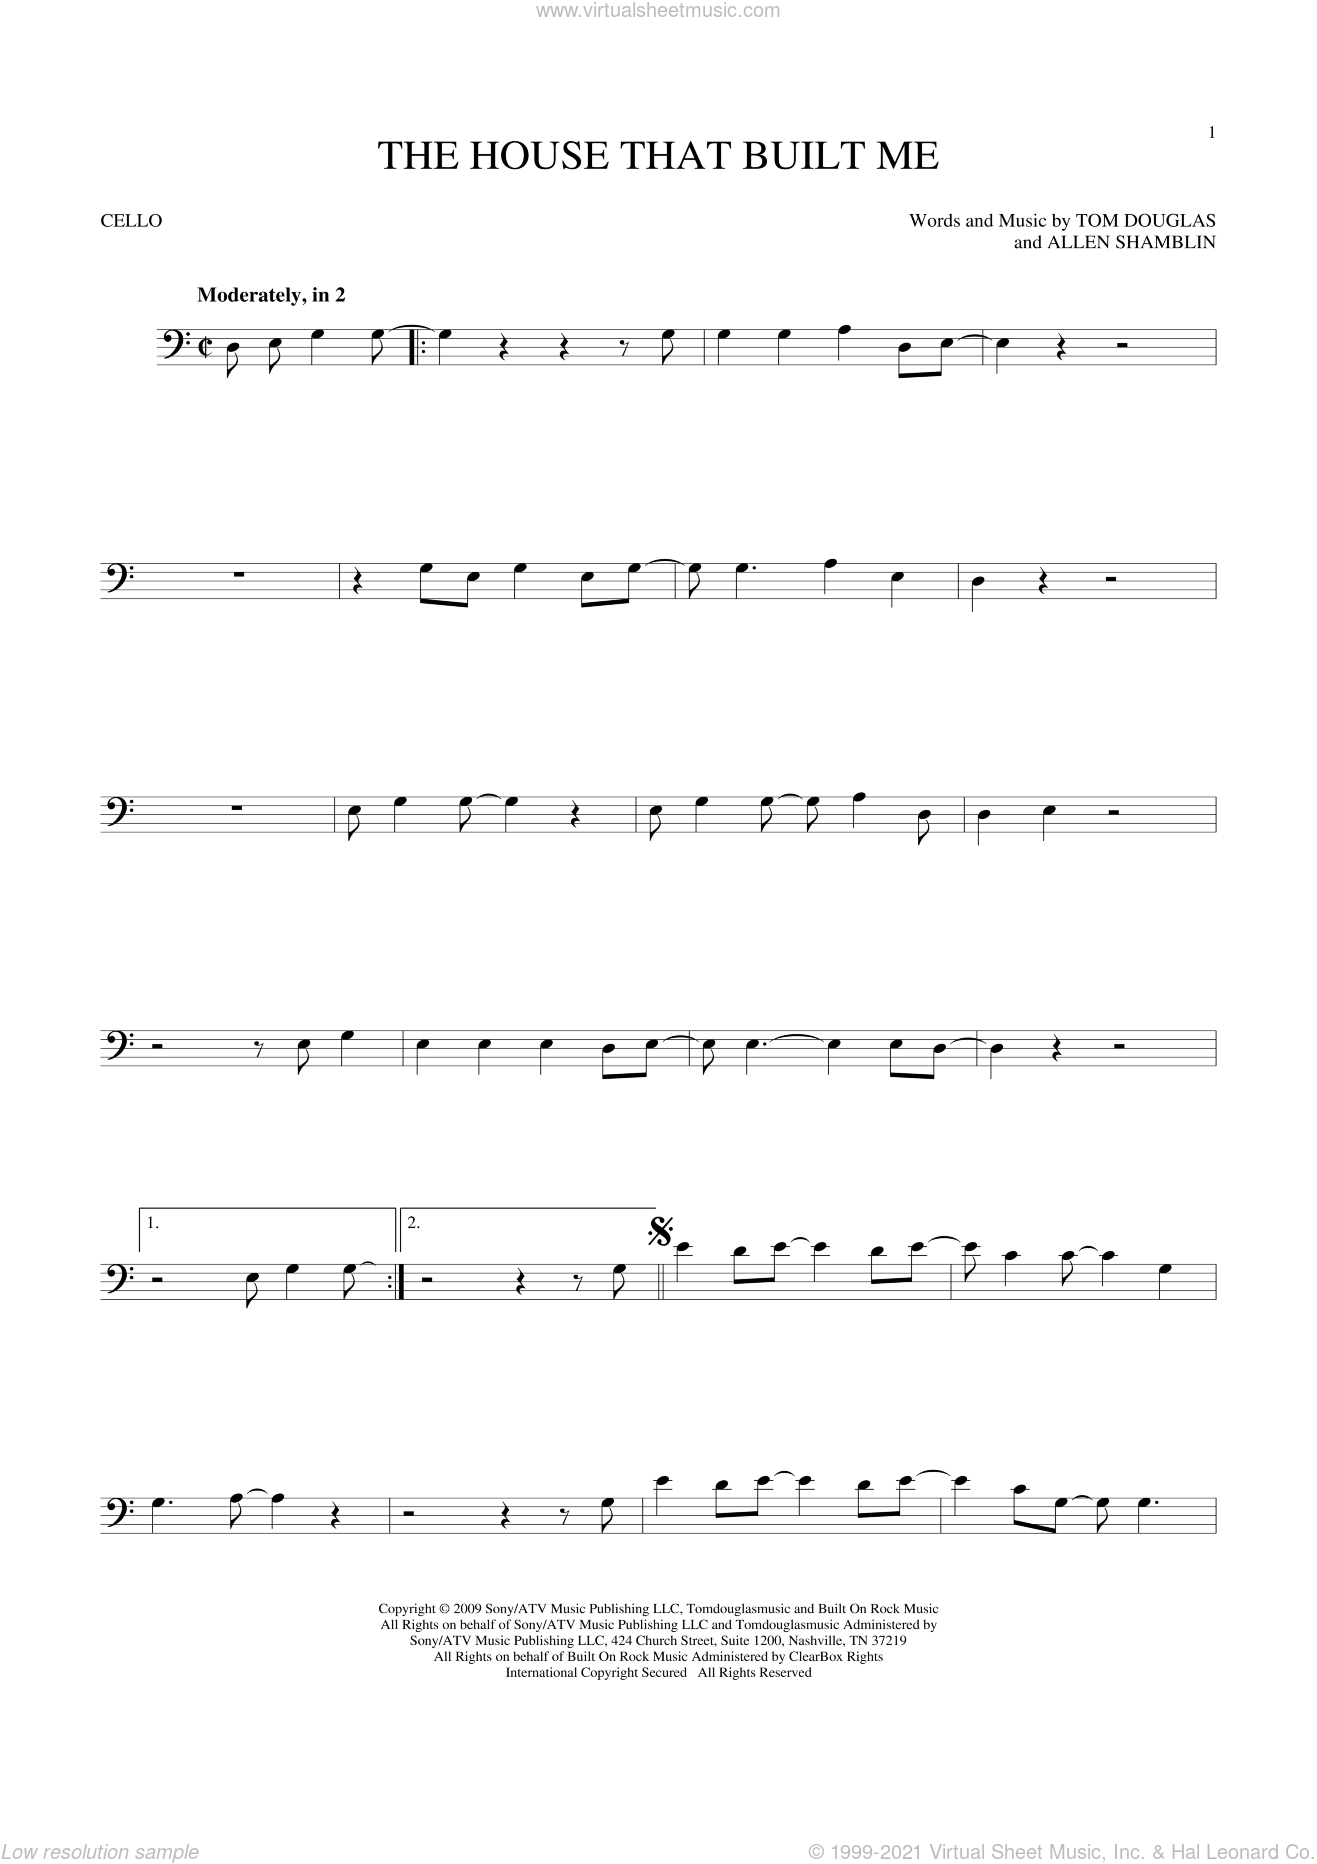 The House That Built Me sheet music for cello solo by Miranda Lambert, Allen Shamblin and Tom Douglas, intermediate skill level